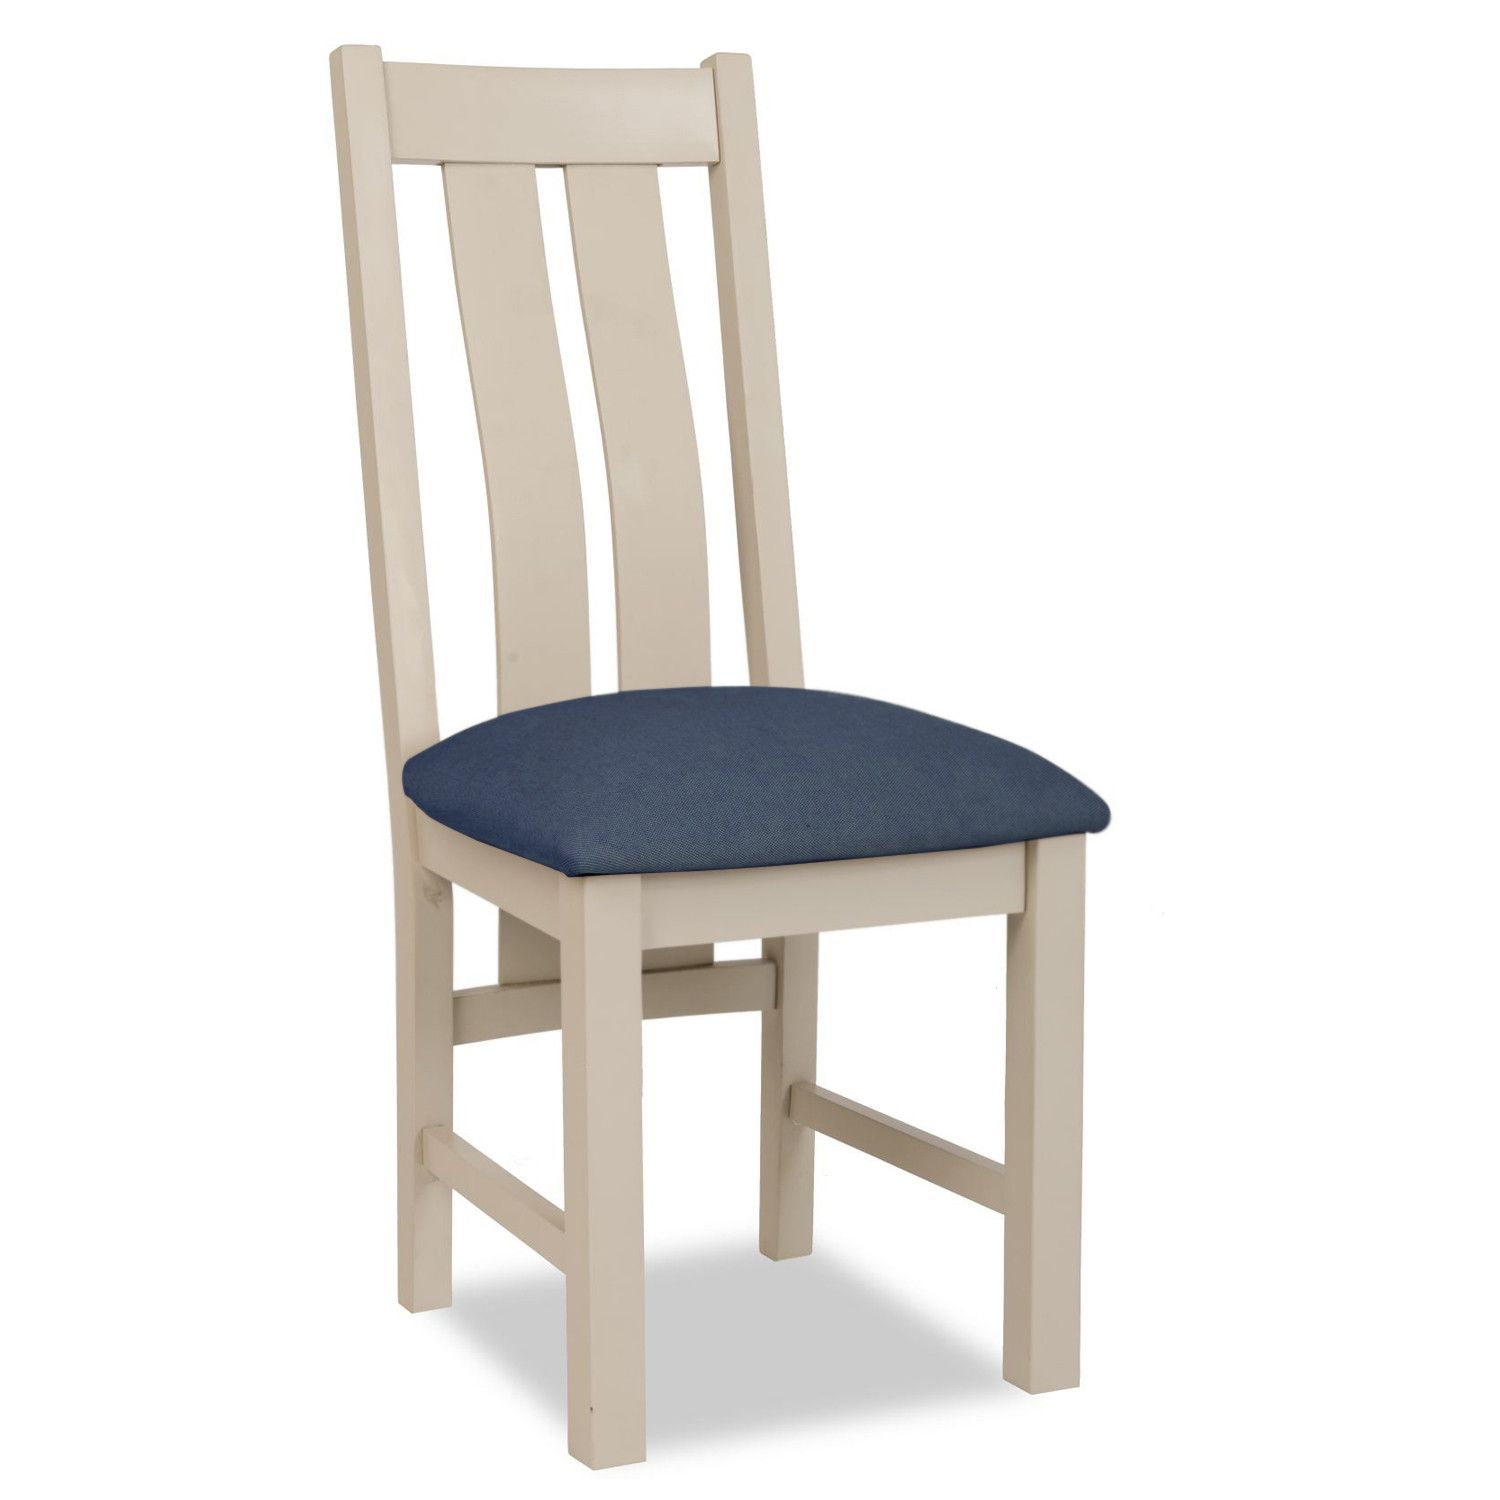 Portland dining chair dining room classic essentials for Classic furniture products vadodara